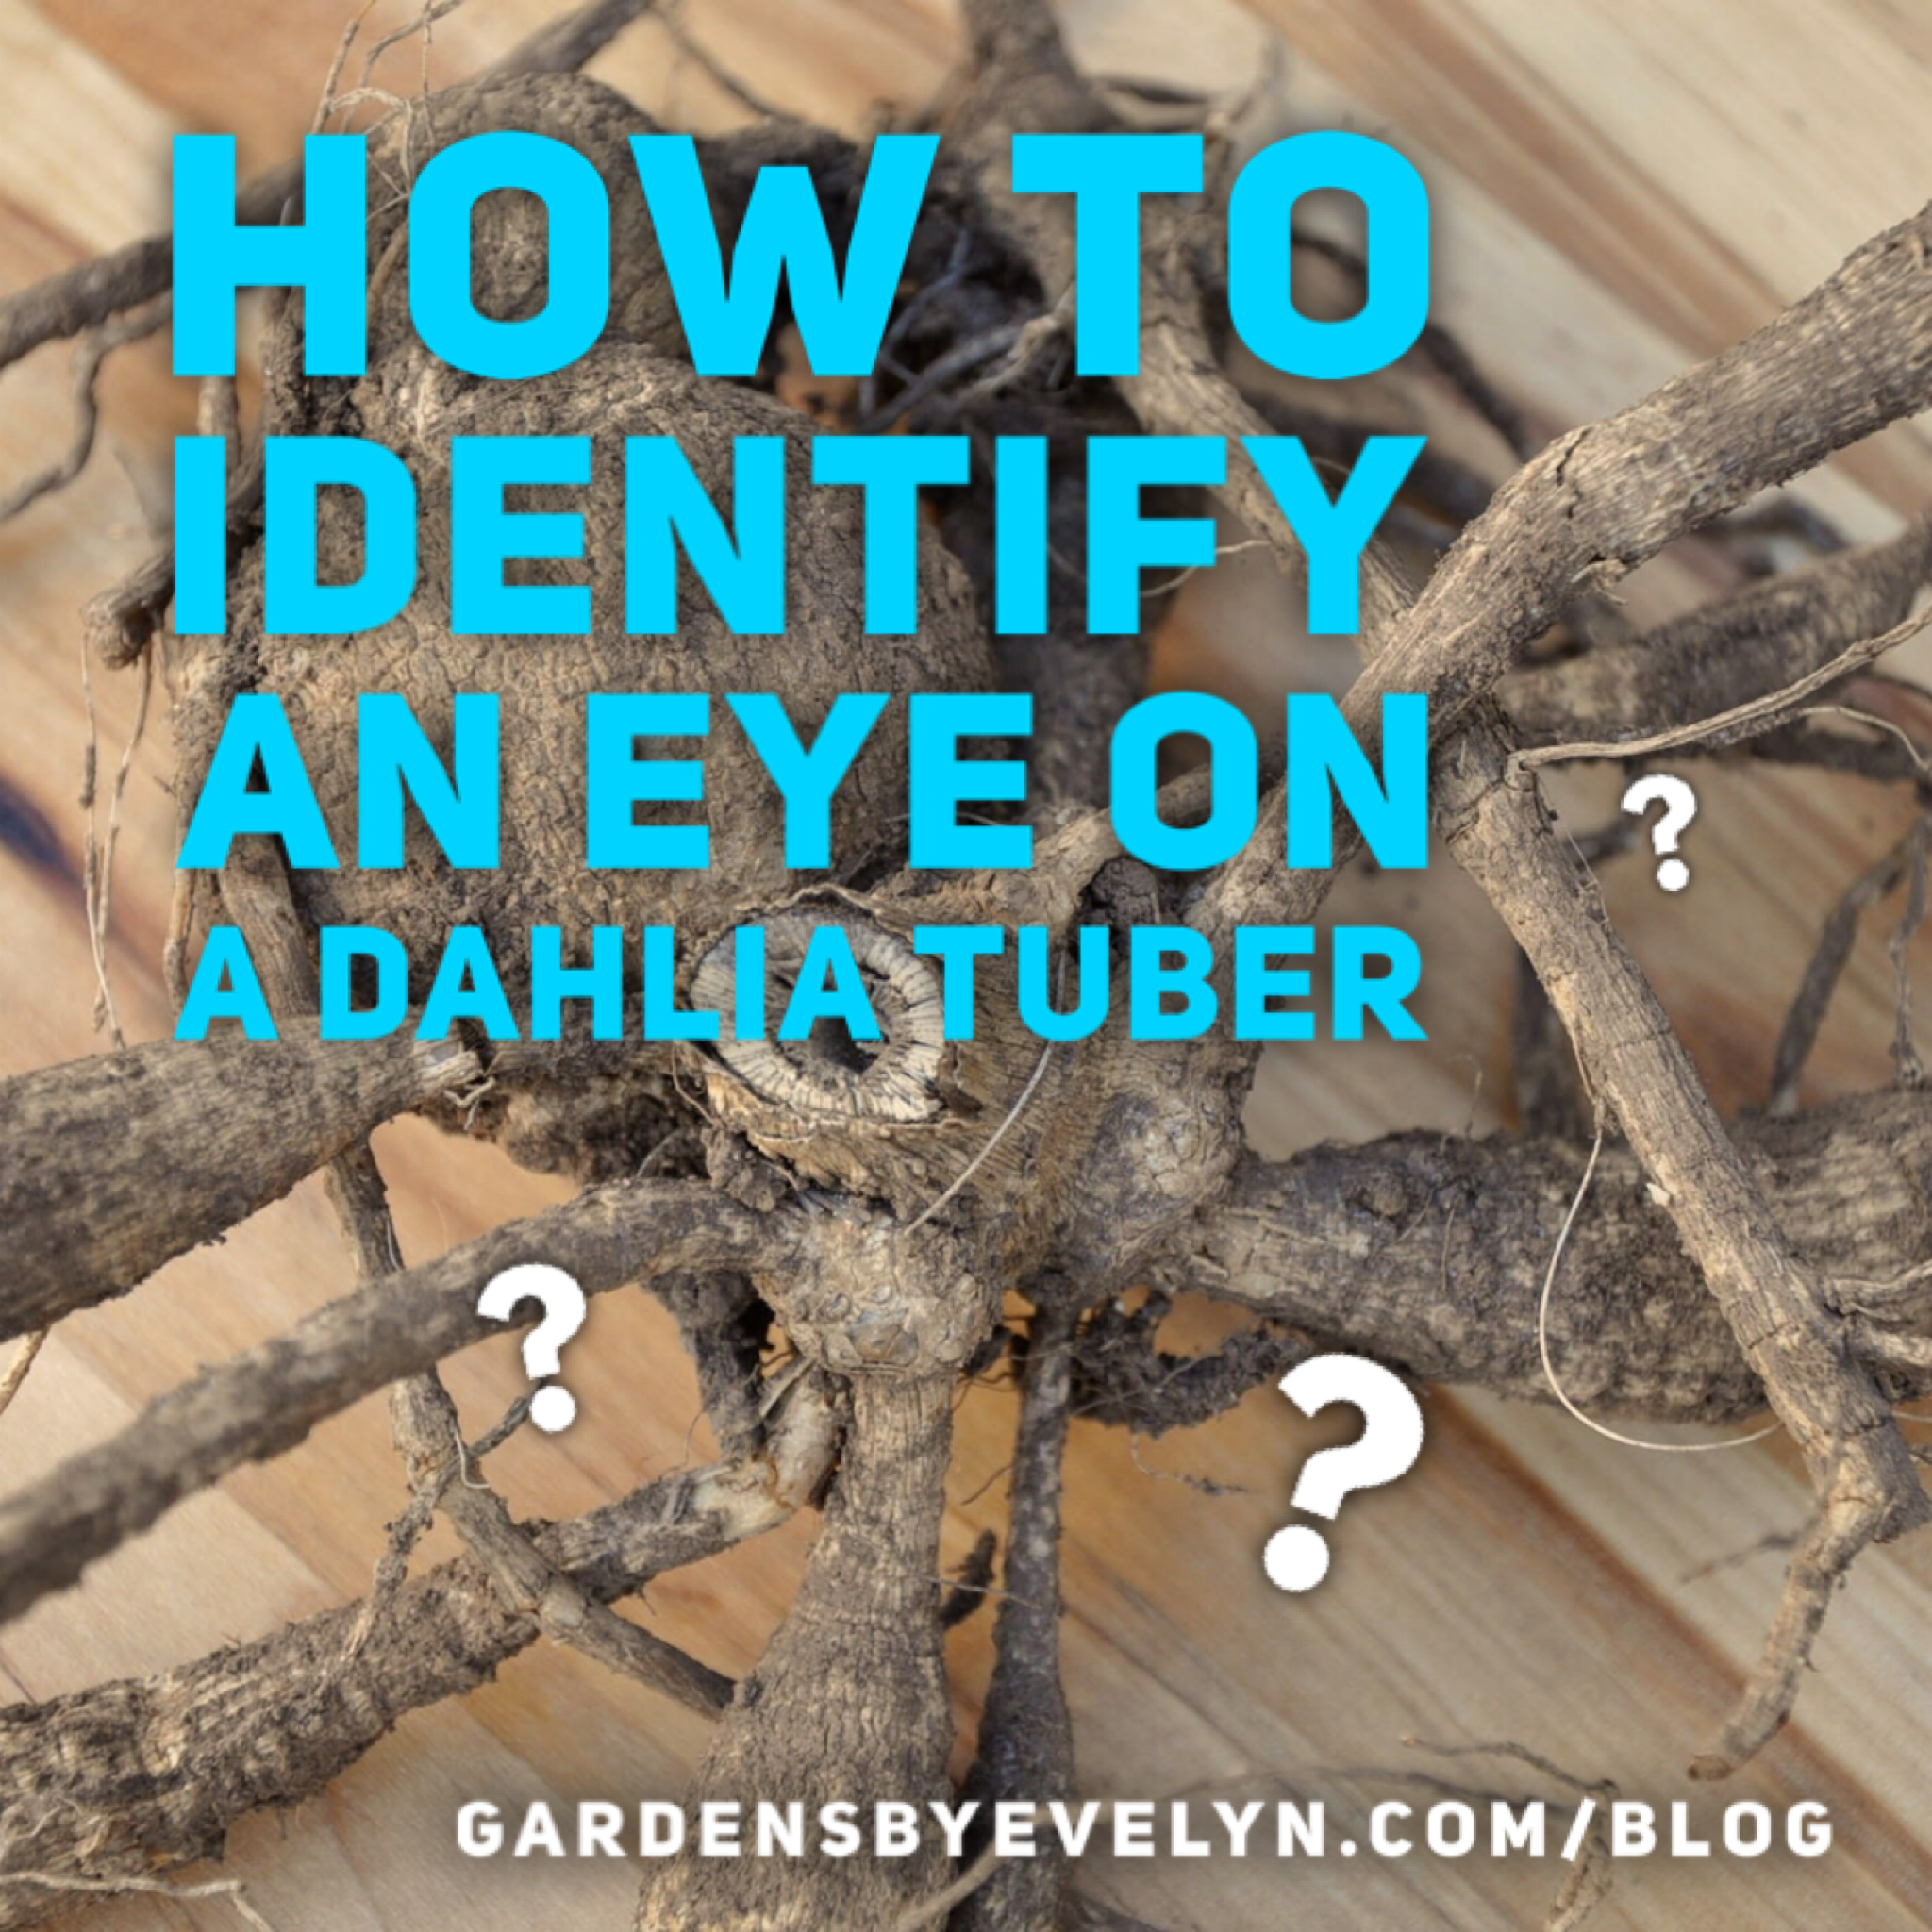 How to identify an eye on a dahlia tuber